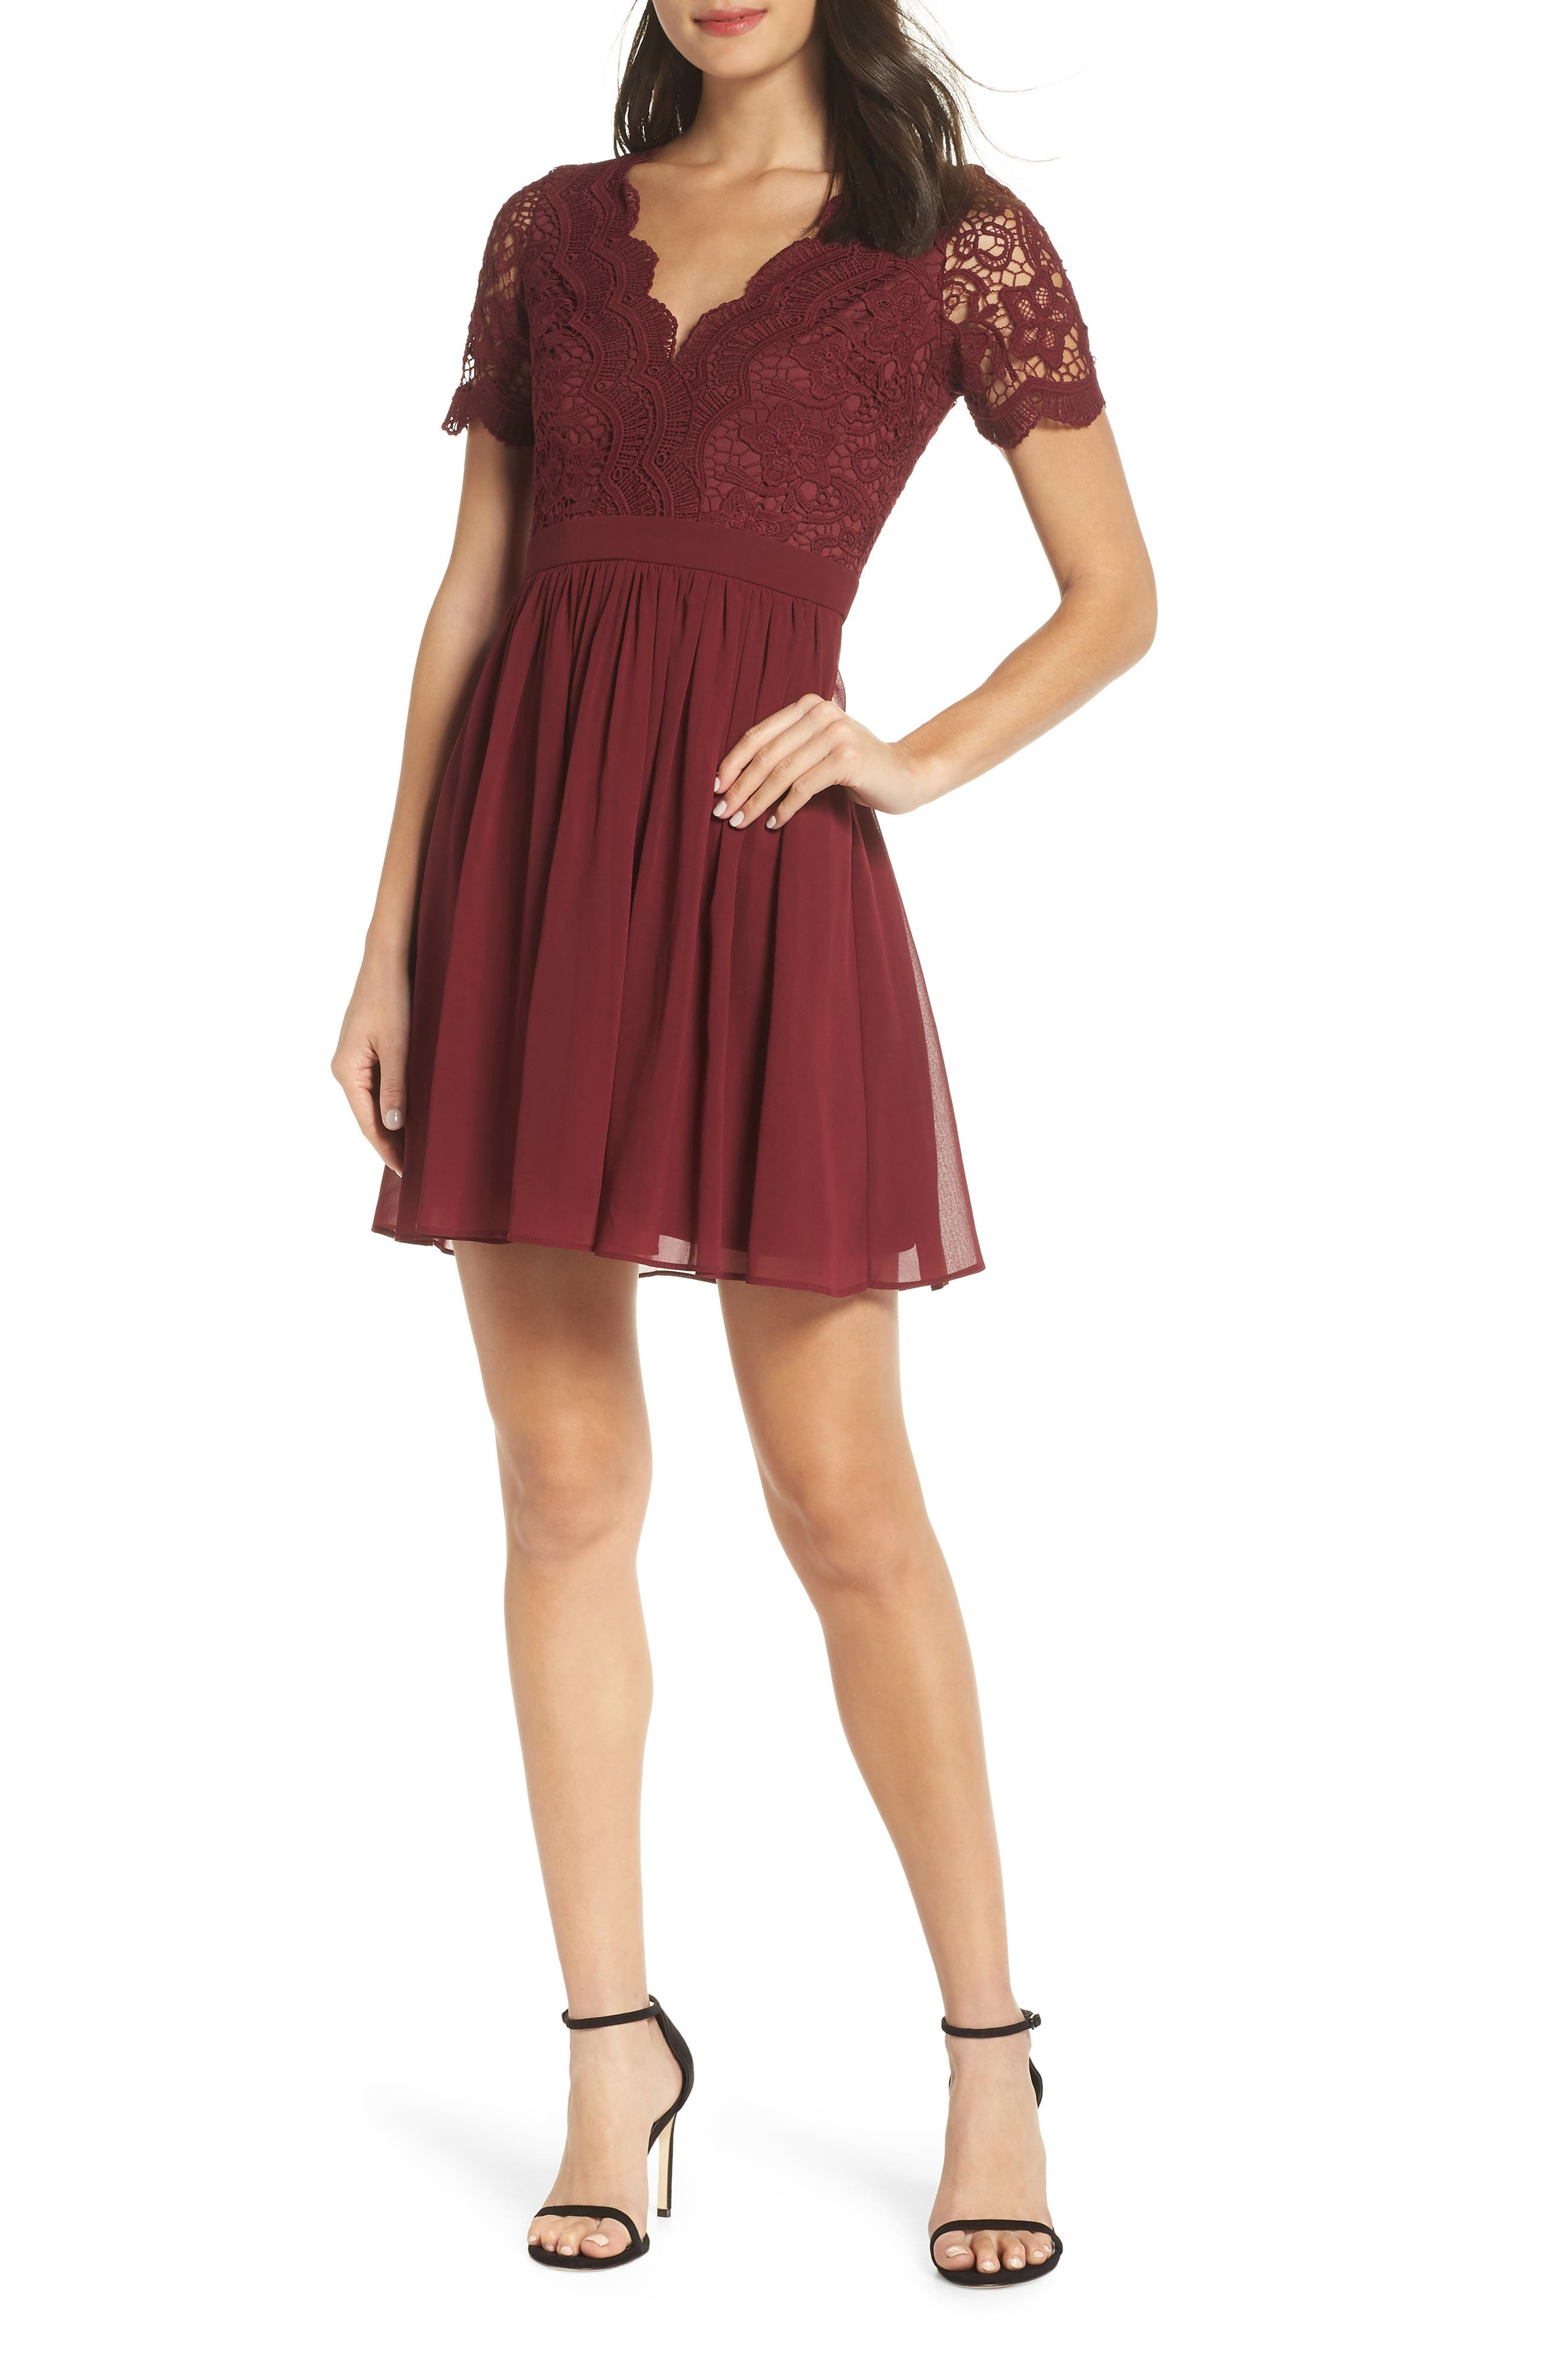 LULUS, Angel in Disguise Lace & Chiffon Party Dress, Main thumbnail 1, color, BURGUNDY